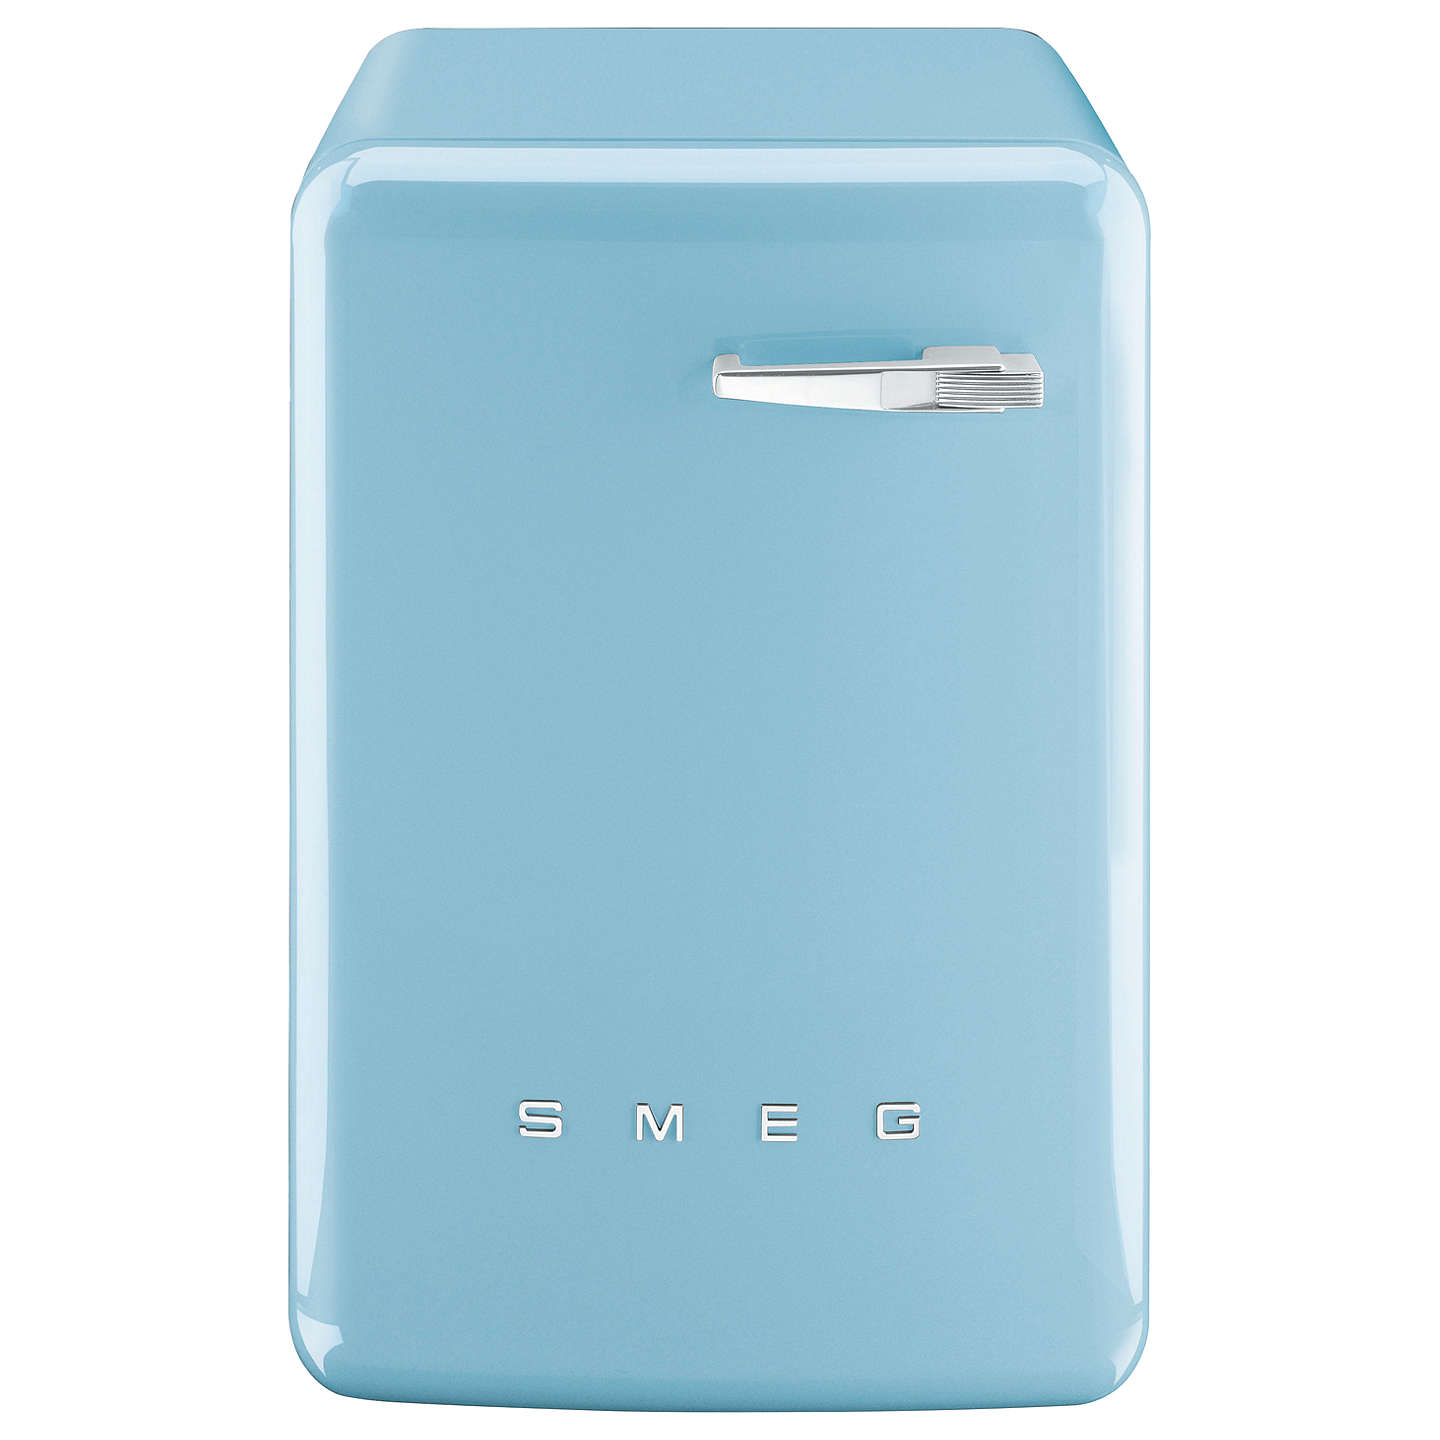 BuySmeg WMFABPB-2 Freestanding Washing Machine, 7kg Load, A++ Energy Rating, 1400rpm Spin, Pastel Blue Online at johnlewis.com